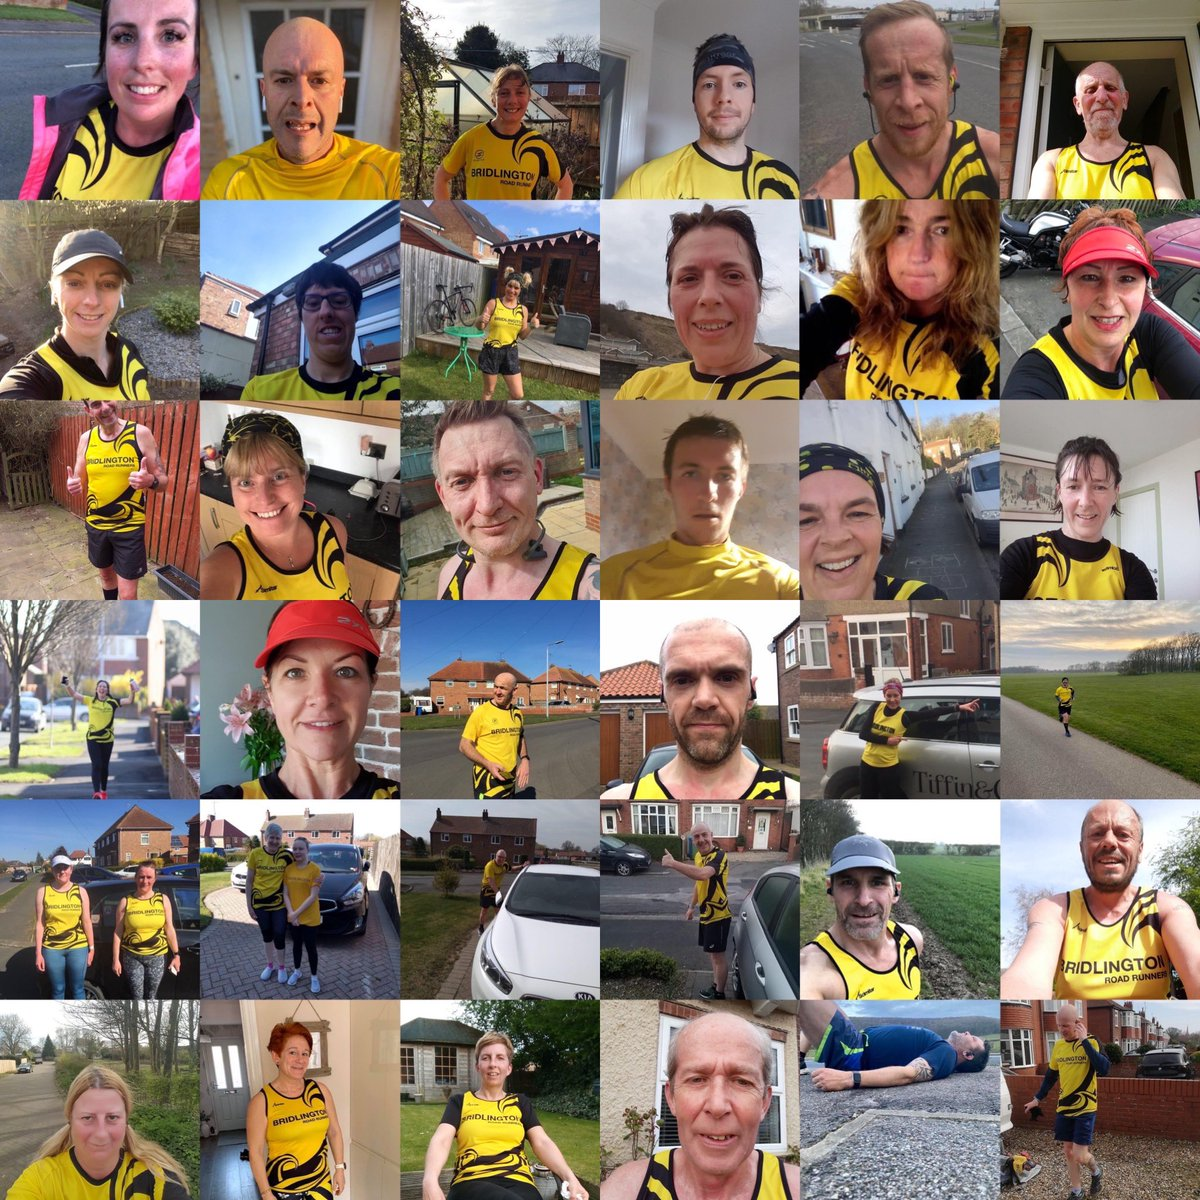 Incredible commitment from BRR members to complete a sunrise to sunset virtual relay over the weekend, 186.11 miles in total showing immense camaraderie, teamwork and support #bridlingtonroadrunners #virtualrelaychallenge #teamwork #runnersforlife #supportthenhspic.twitter.com/QQ5ehgDE5w